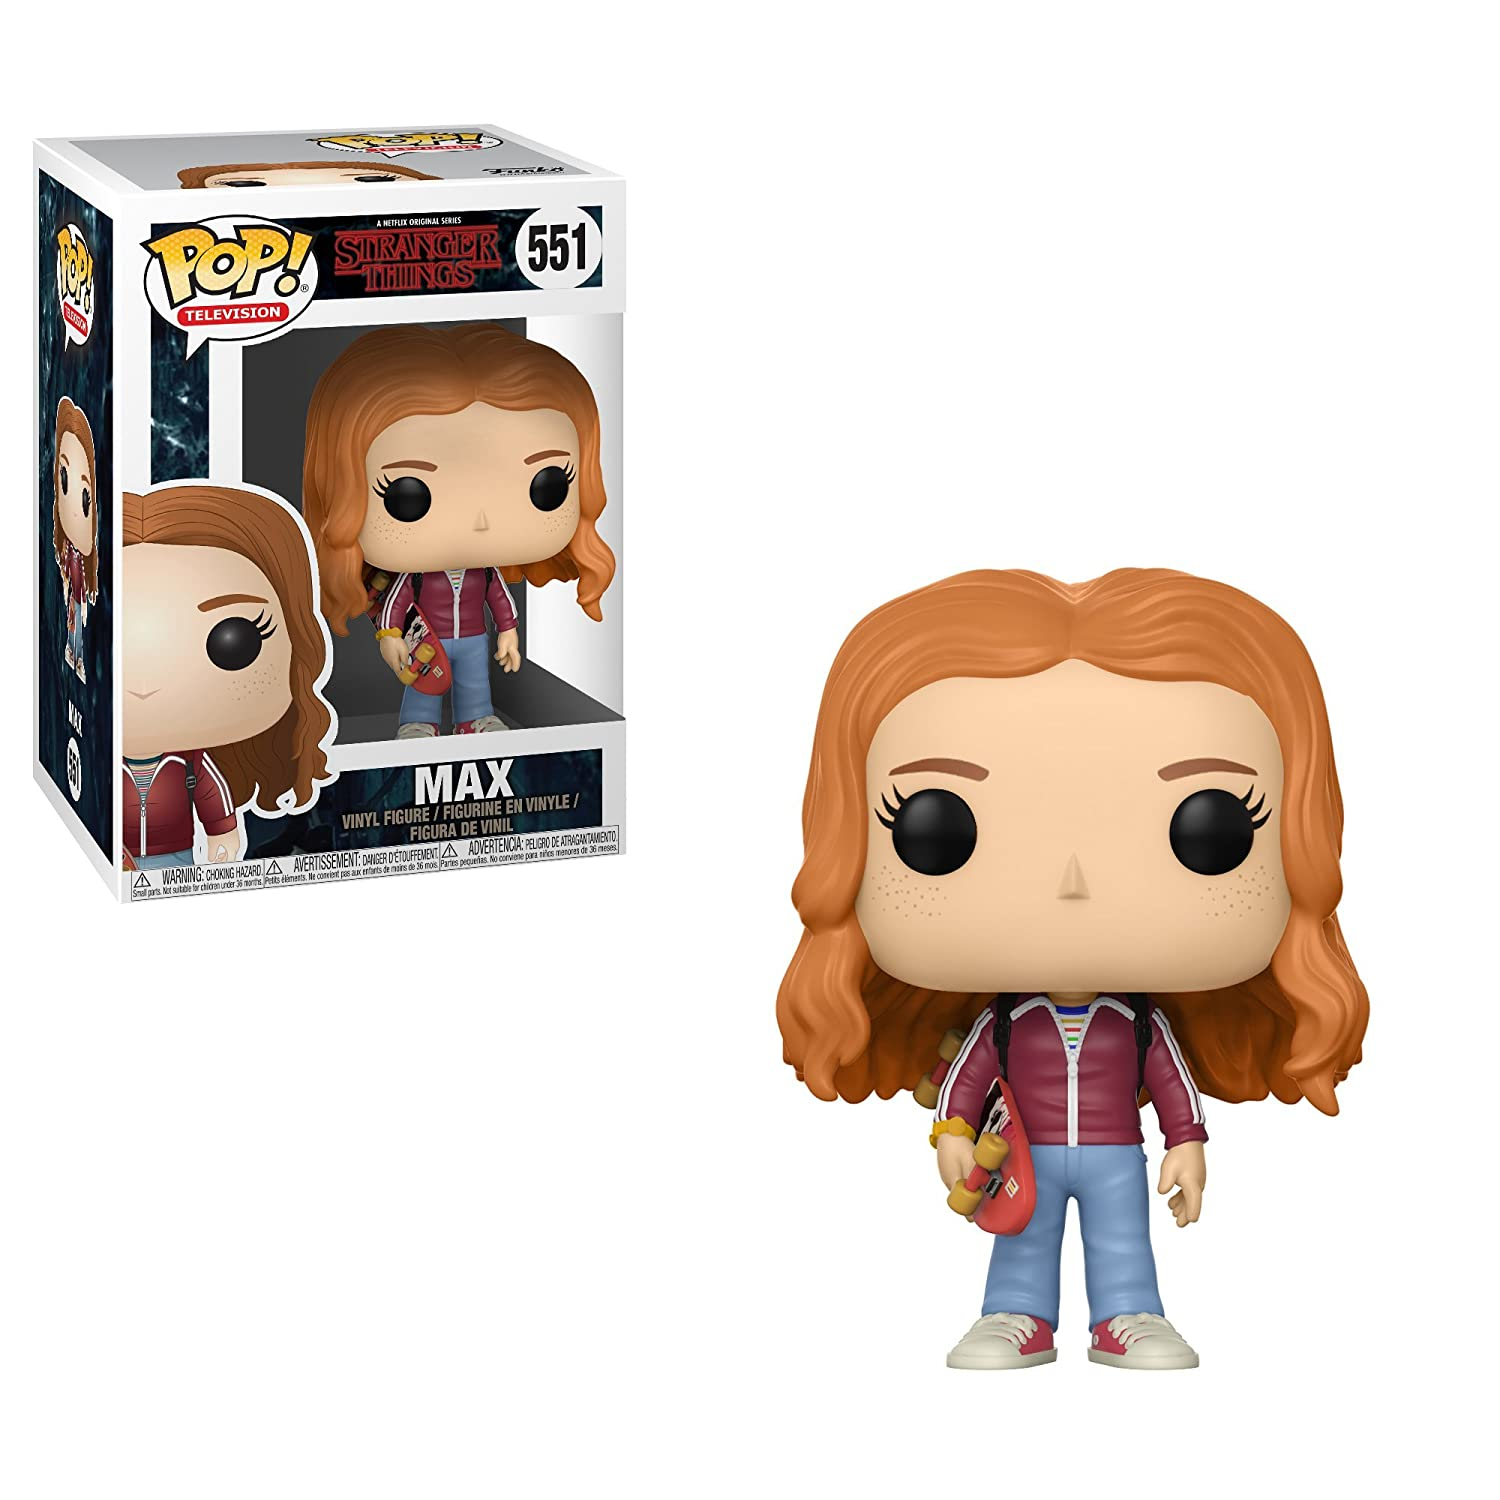 1255dab696db60 Amazon.com  Funko Pop Television  Stranger Things - Max with Skateboard  Collectible Vinyl Figure  Stranger Things  Toys   Games